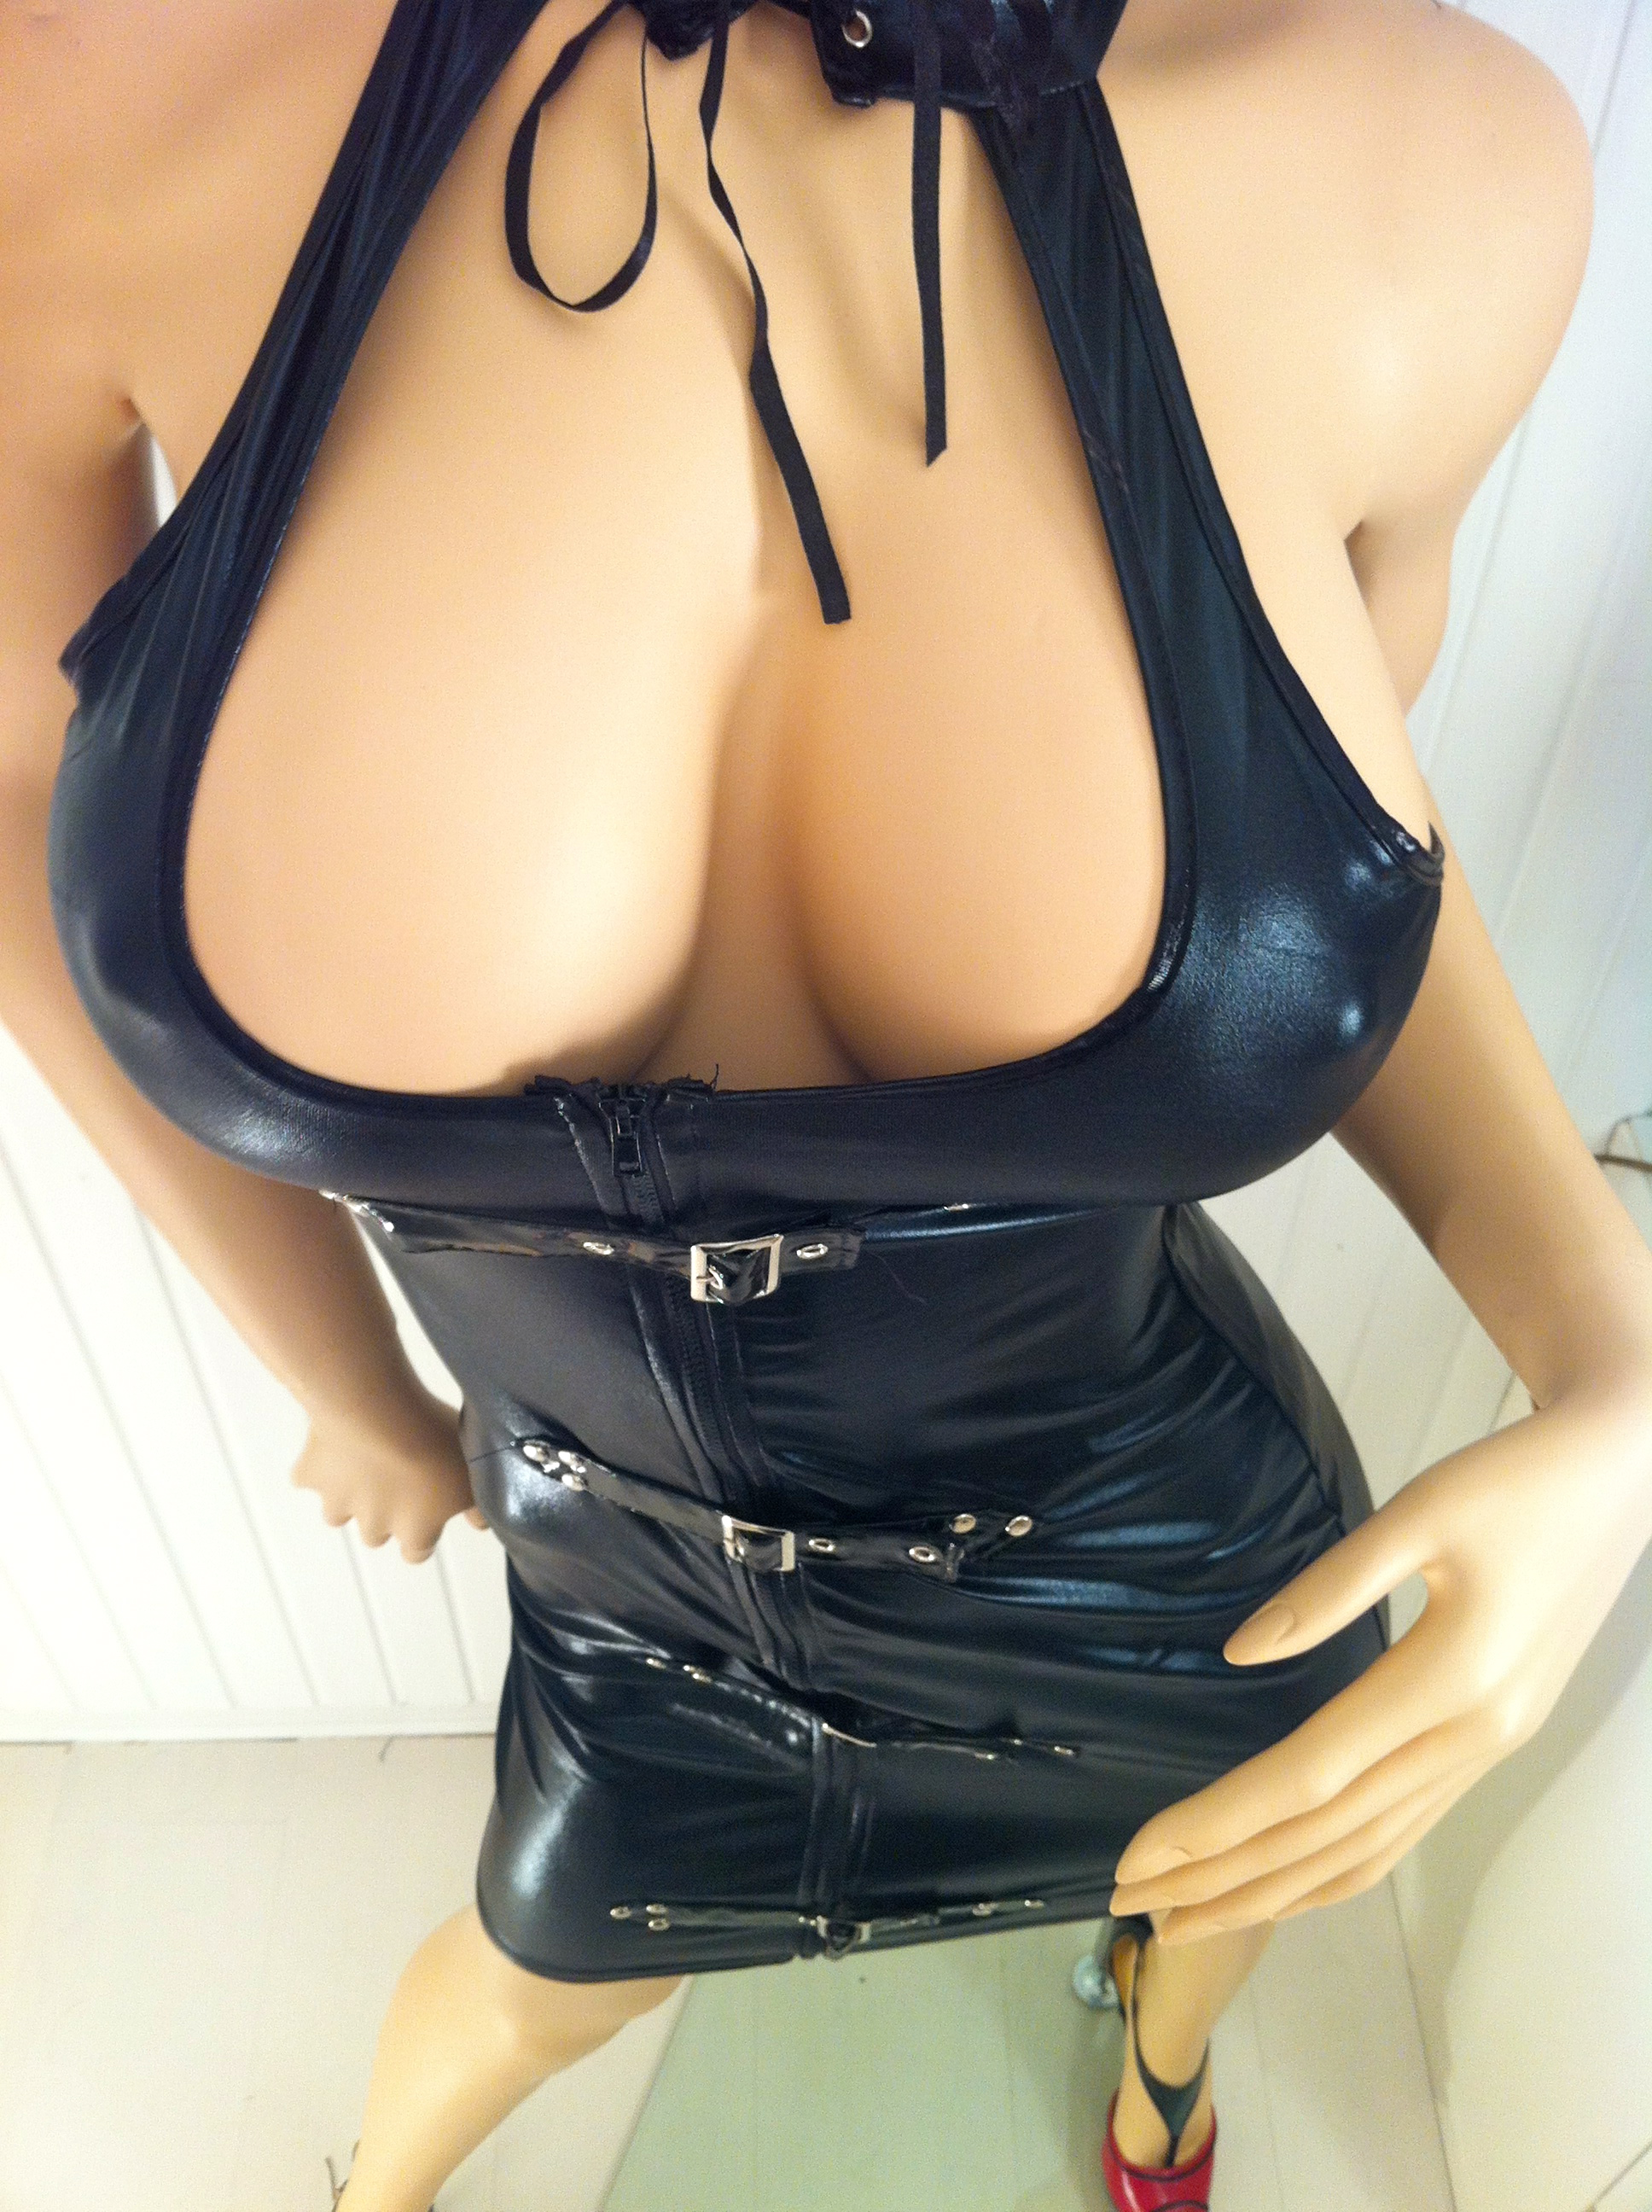 stuttgart sex shop latex catsuit tease